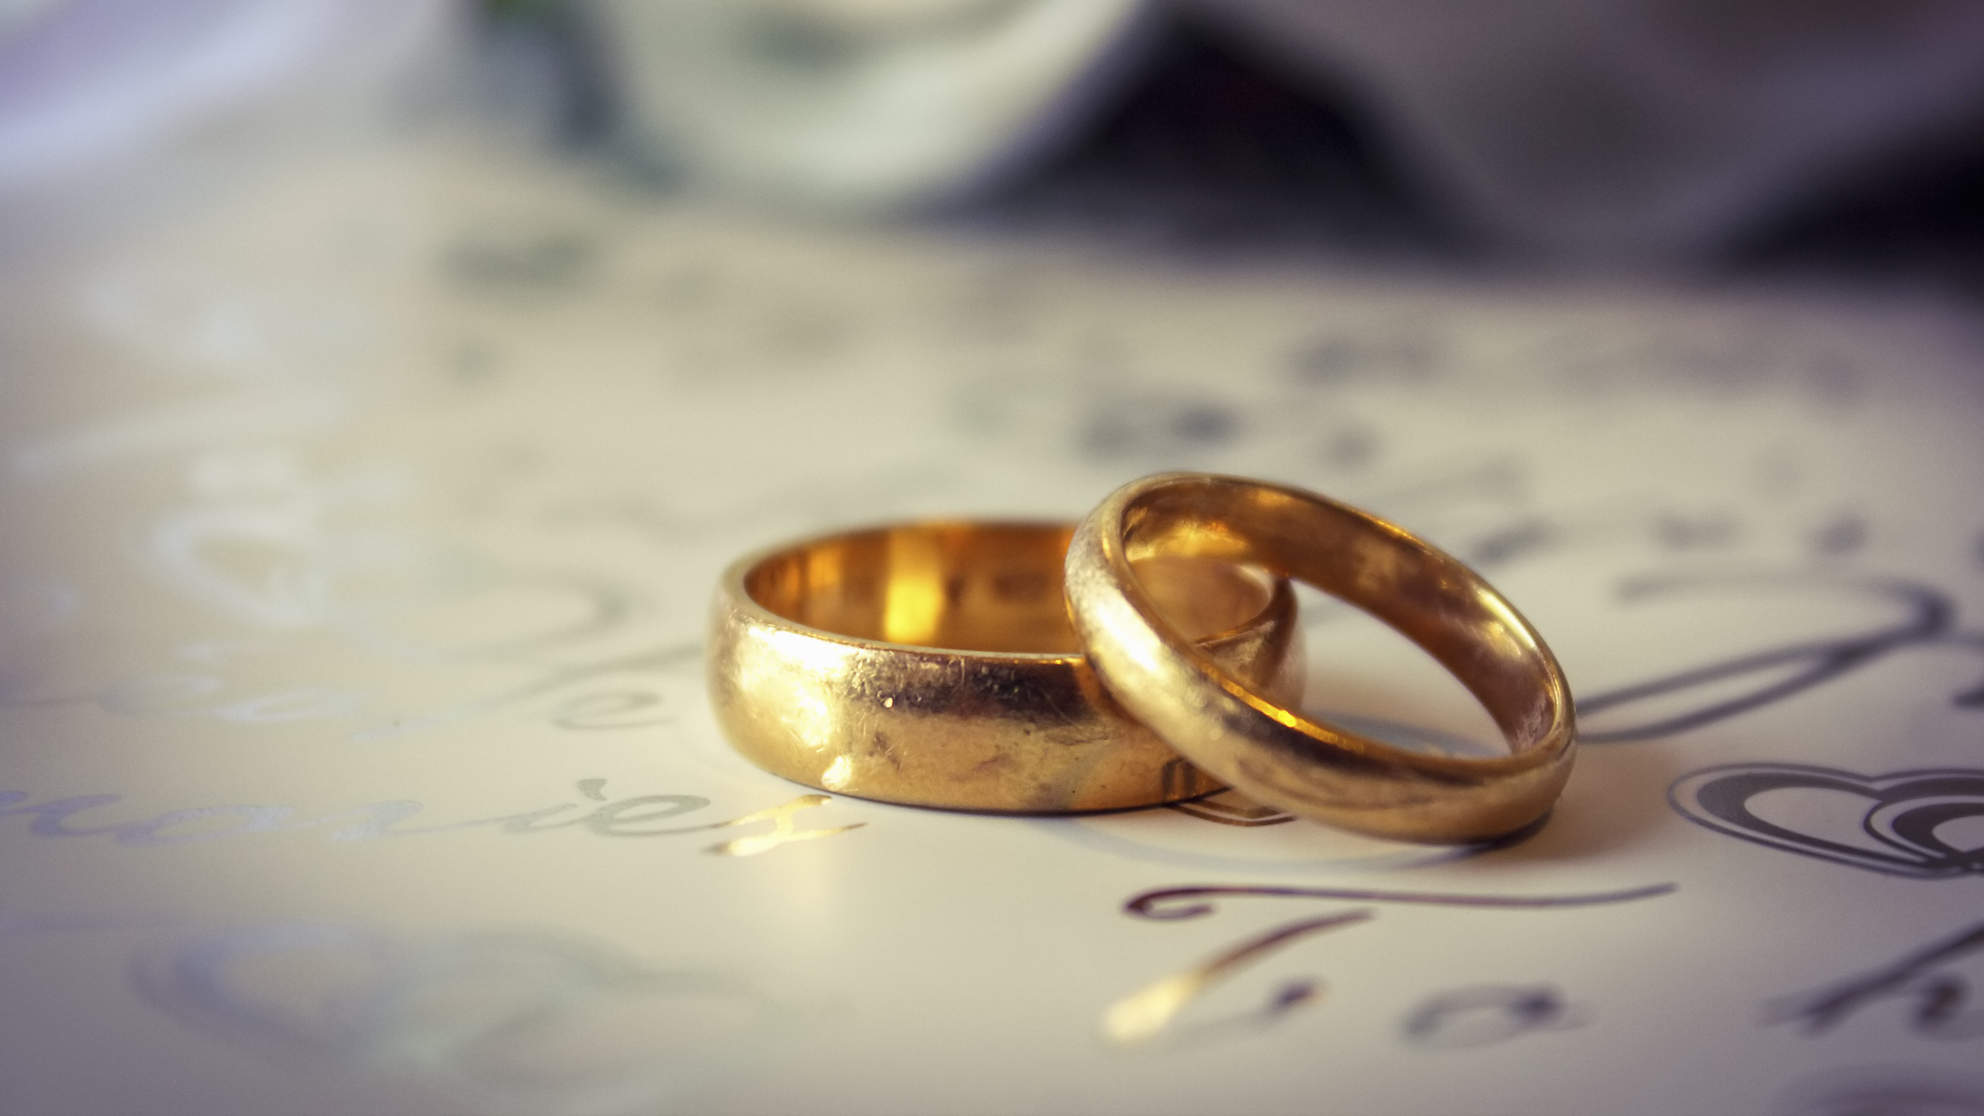 A Good Marriage May Help Keep You Thin, Study Says